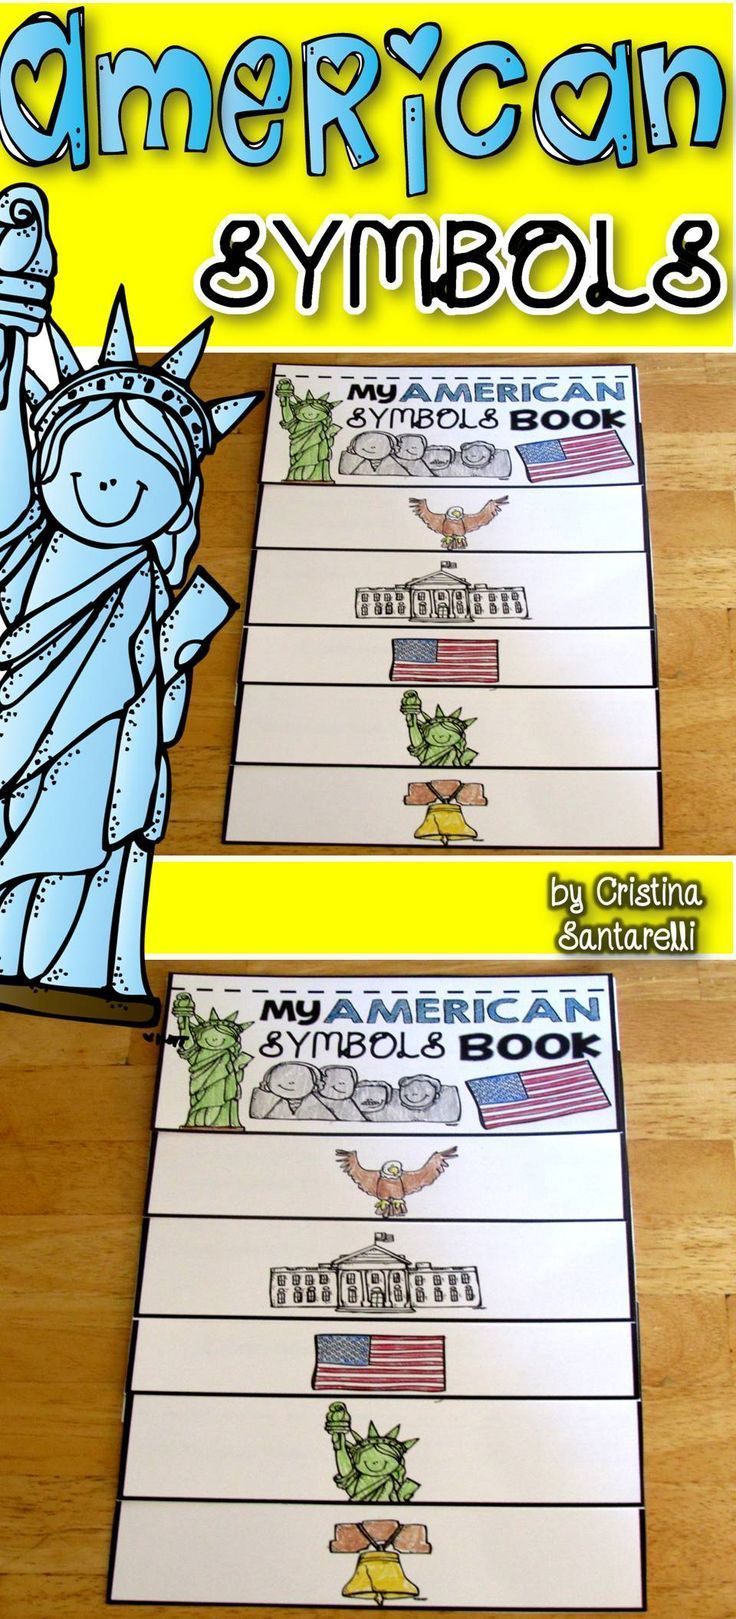 an analysis of the preschool education as a prevailing topic of interest in the united states Analysis of fictional techniques on  language and subject matter of the story suggest the southern united states as a setting-sometime in the mid- to  topic.